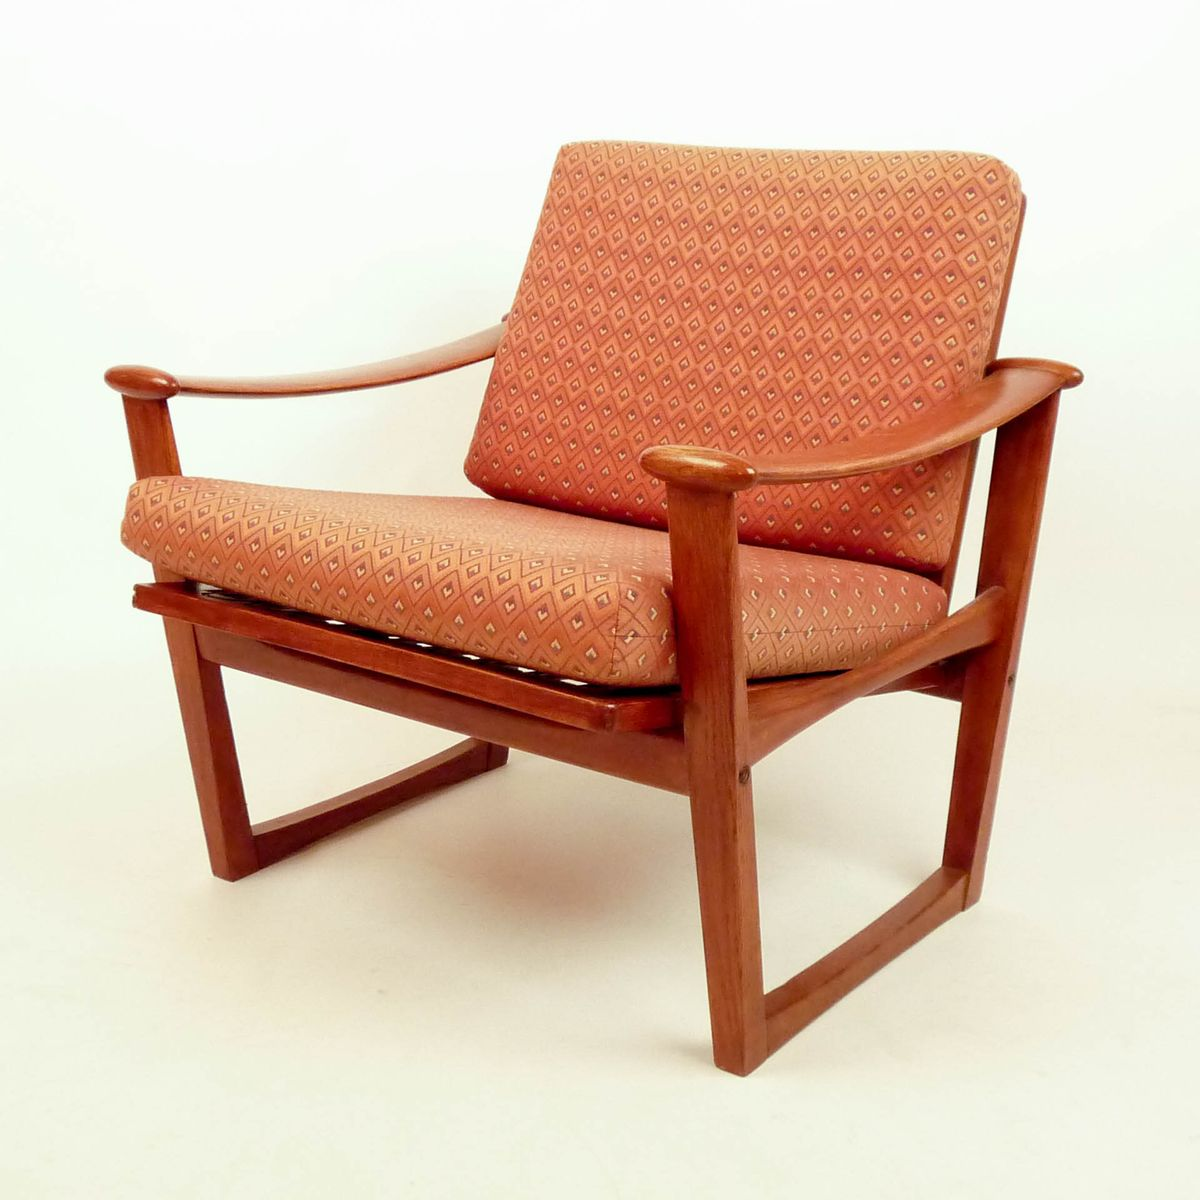 Scandinavian easy chair by finn juhl for pastoe 1960s for sale at pamono - Scandinavian chair ...